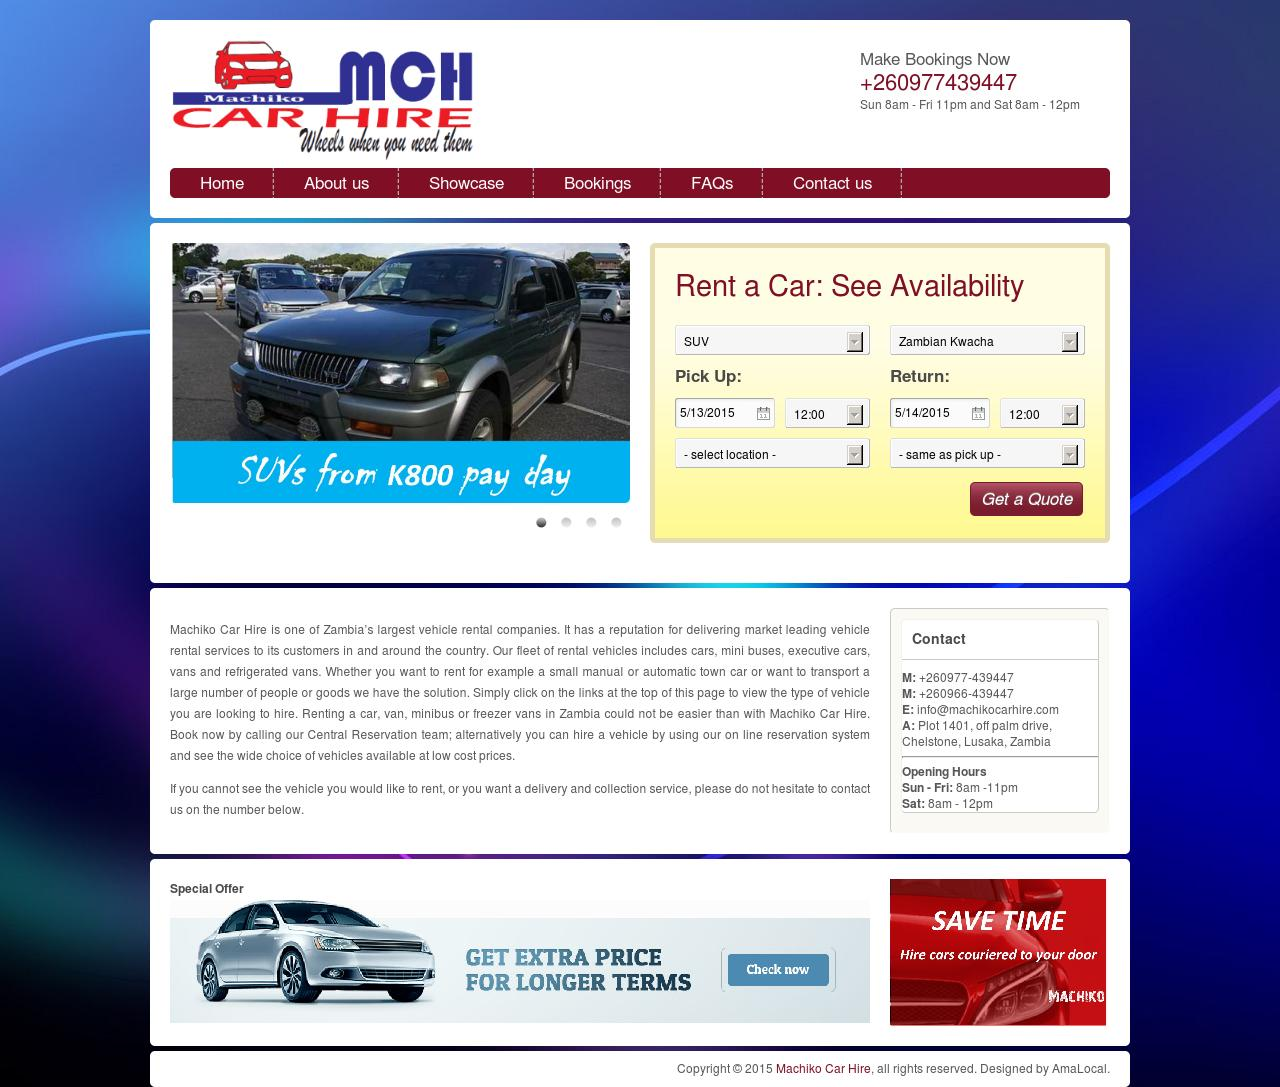 Machiko Car Hire Website Design  Afrimedia Designs. Bone Dry Roofing Cincinnati Online Crm Free. Criteria For Substance Abuse. Top Ten Home Security Systems. Indiana Overweight Permits Tucows Domains Inc. How Much Does Lasik Cost 2013. Fiber Optic Internet Sacramento. Verizon Small Business Phone Service. Oracle Inventory Management Software